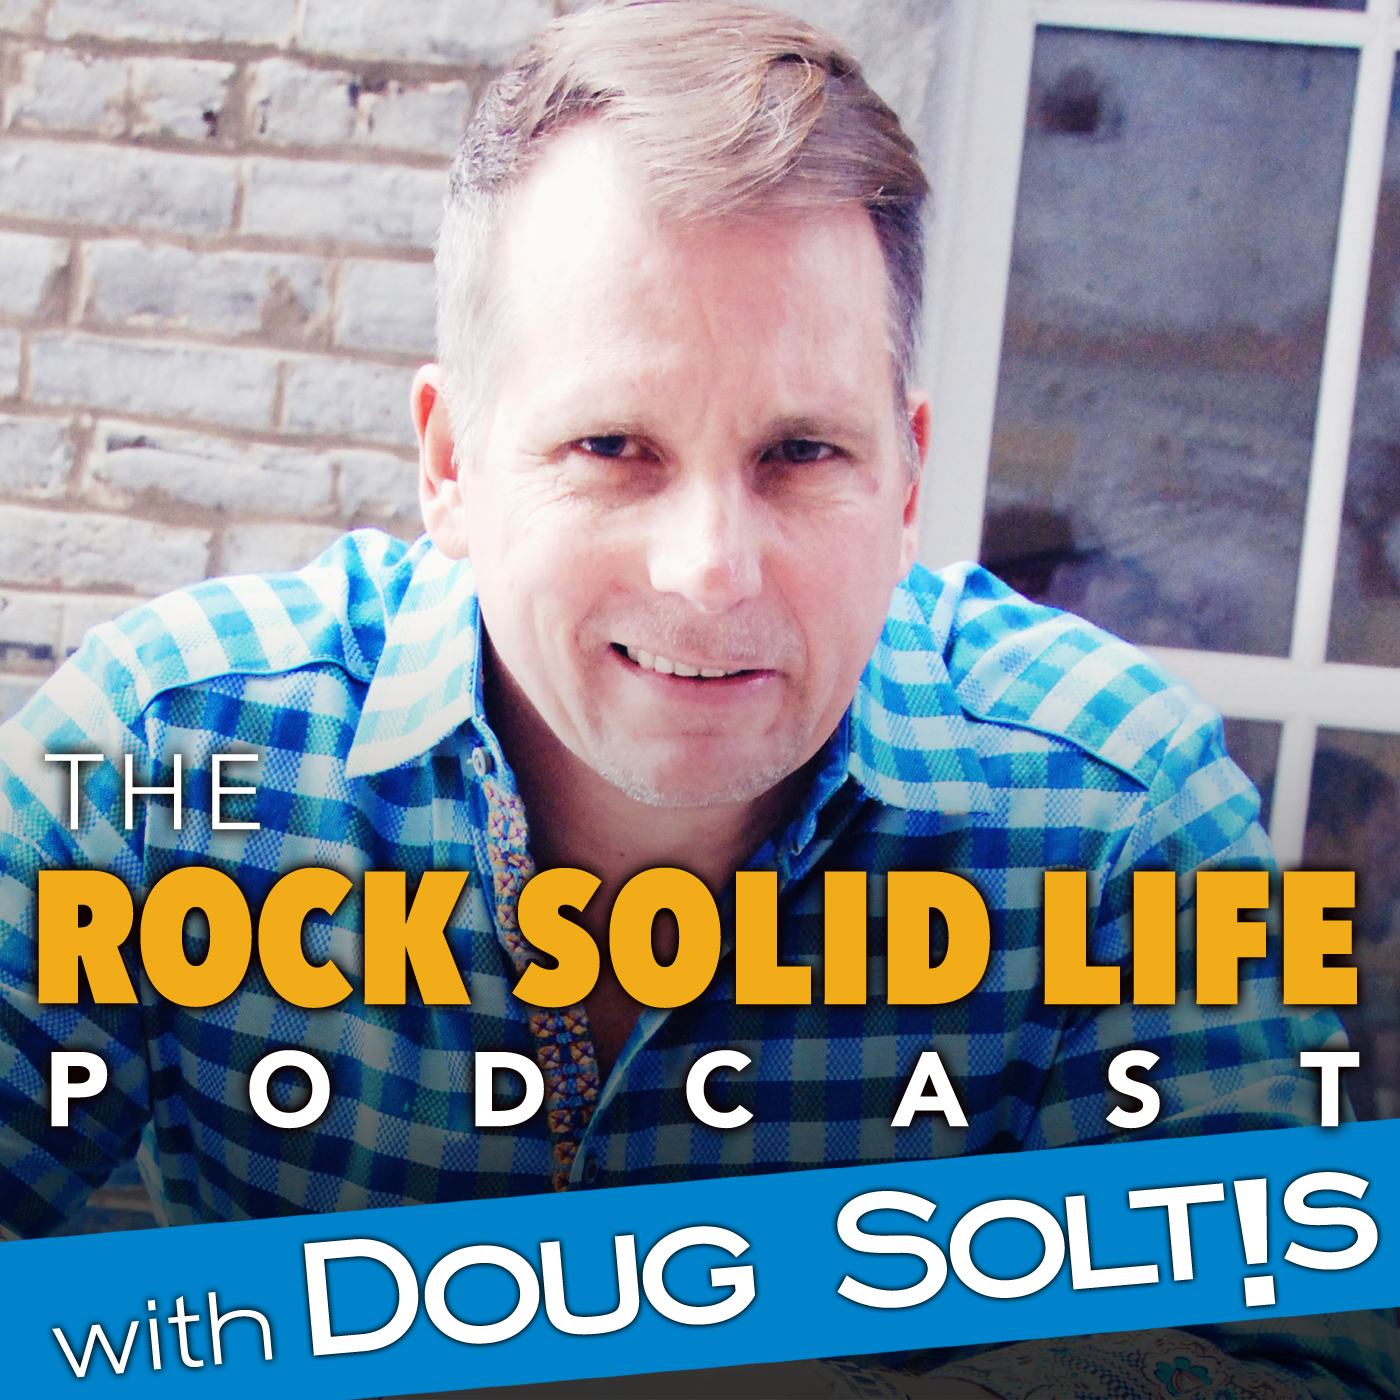 Rock Solid Life with Doug Soltis